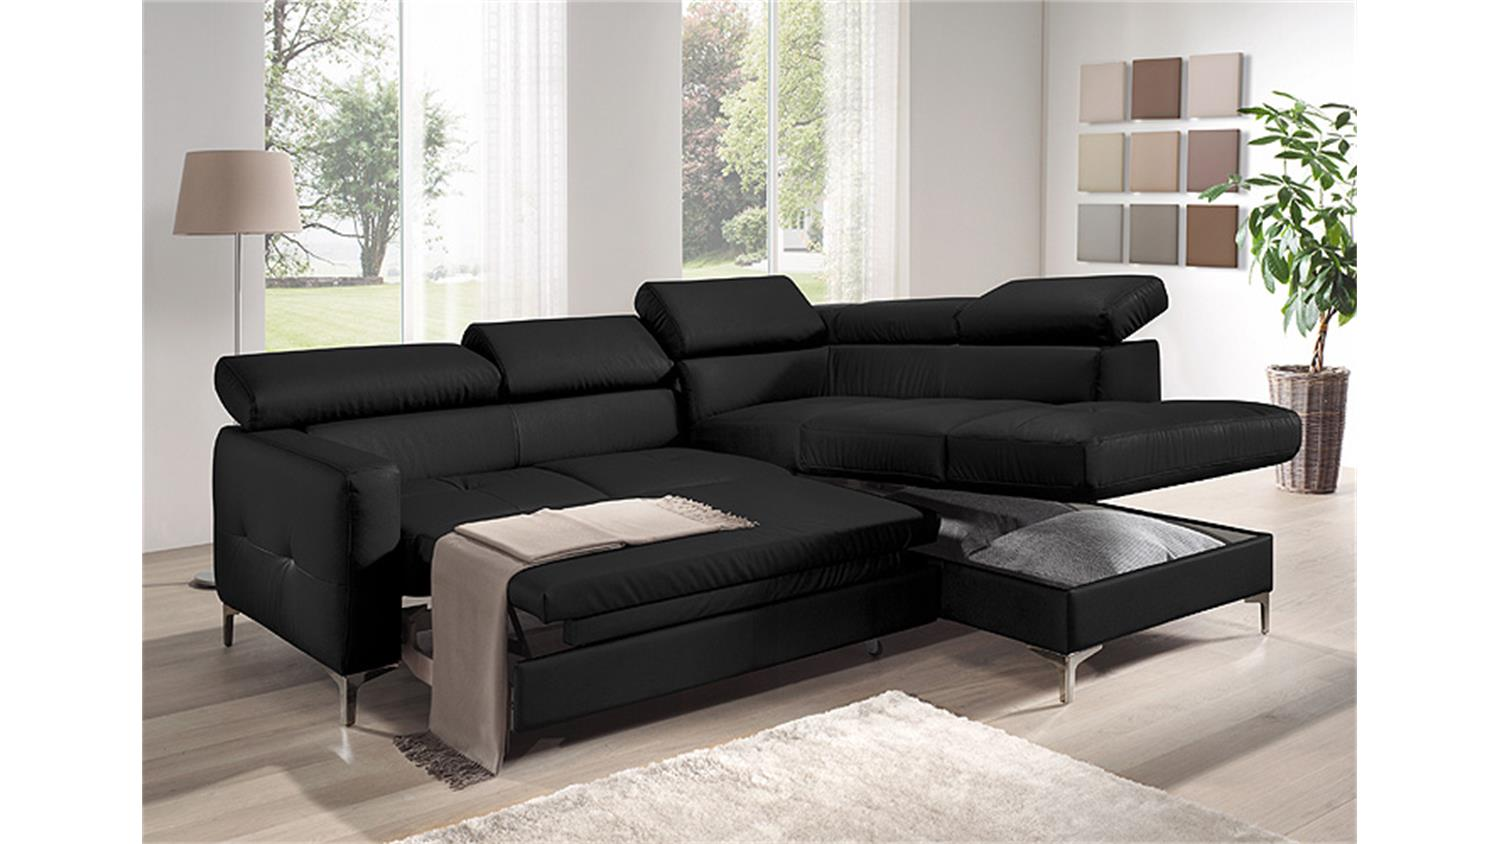 ecksofa oder einzelsofa inspirierendes design f r wohnm bel. Black Bedroom Furniture Sets. Home Design Ideas